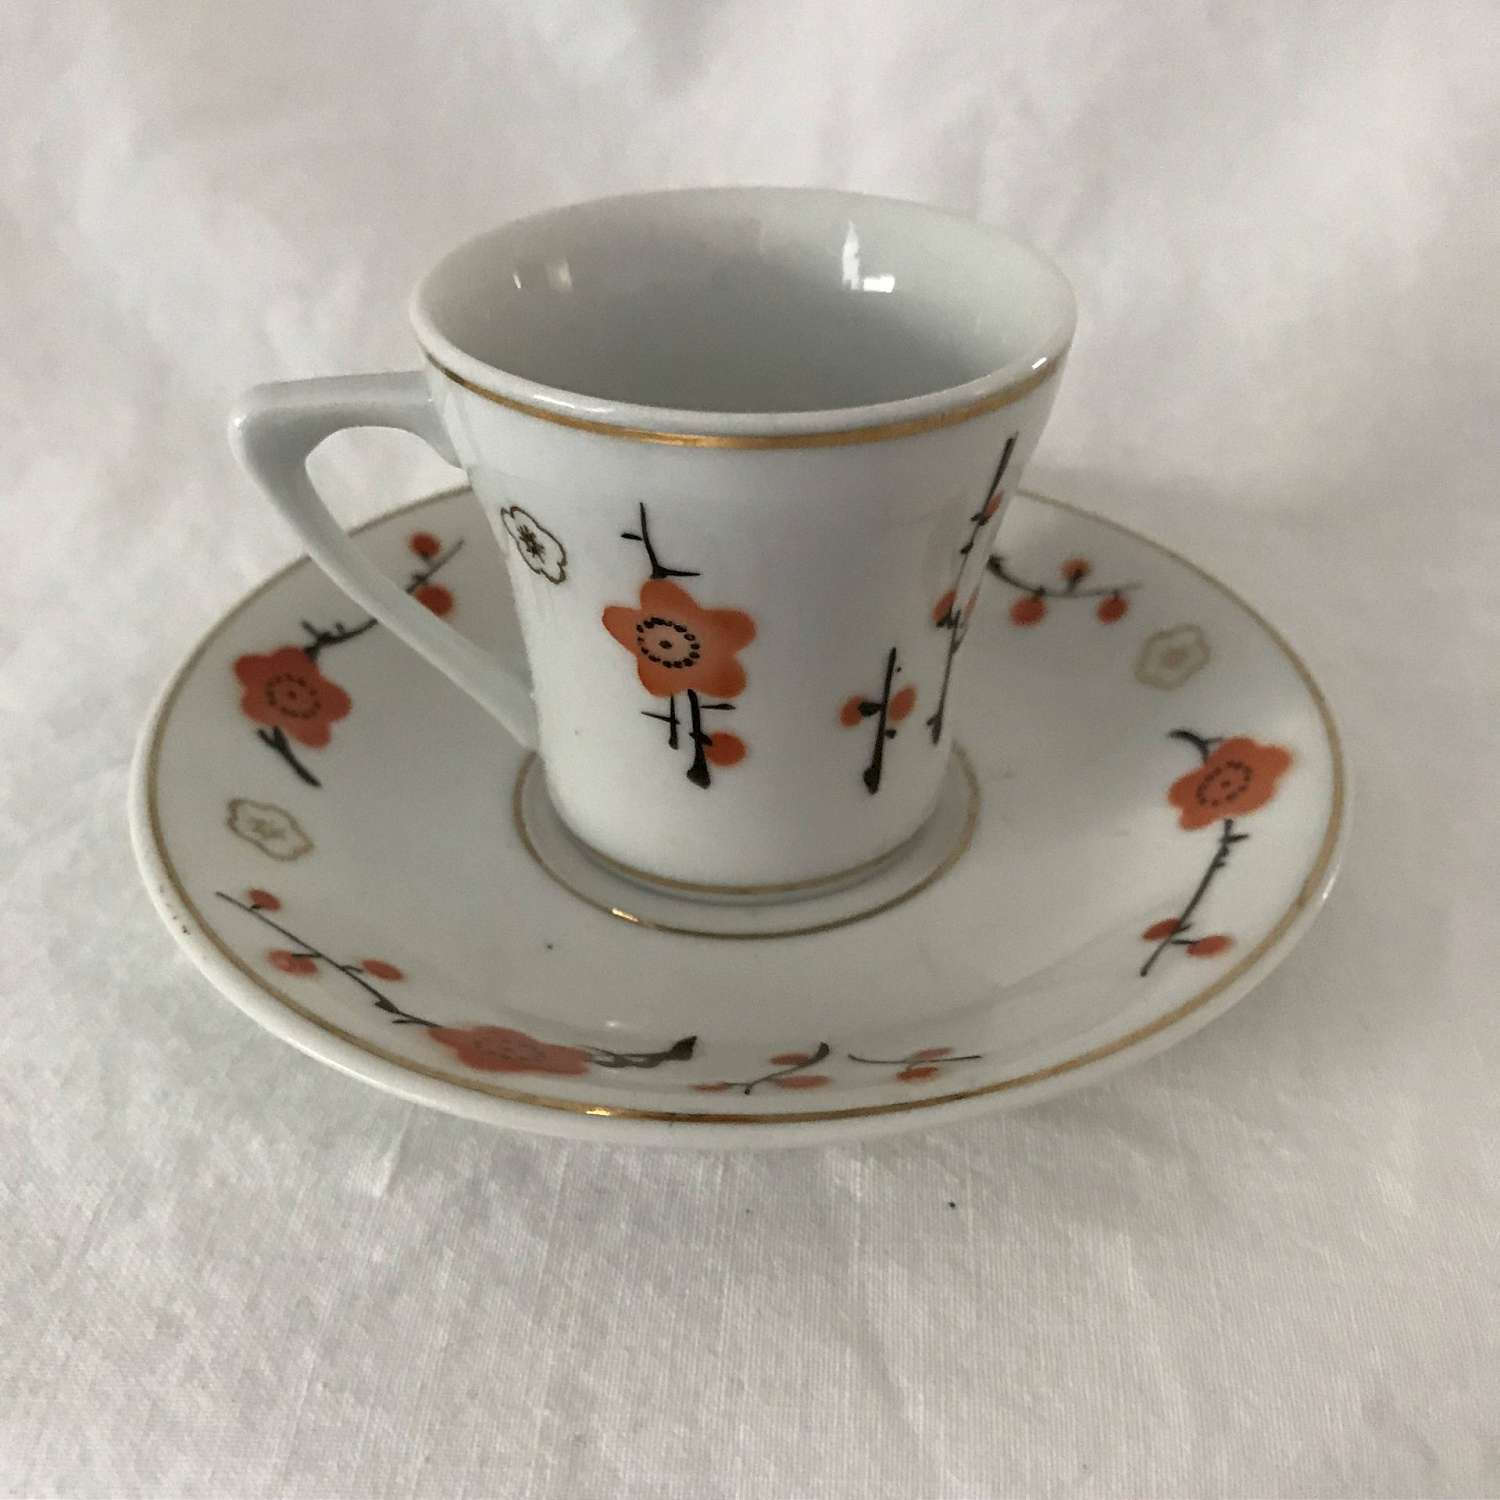 Dainty Demitasse Tea Cup And Saucer Mid Century Orange Black Flowers Display Collectible Entertaining Dining Tea Coffee Cottage Kitchen Carol S True Vintage And Antiques